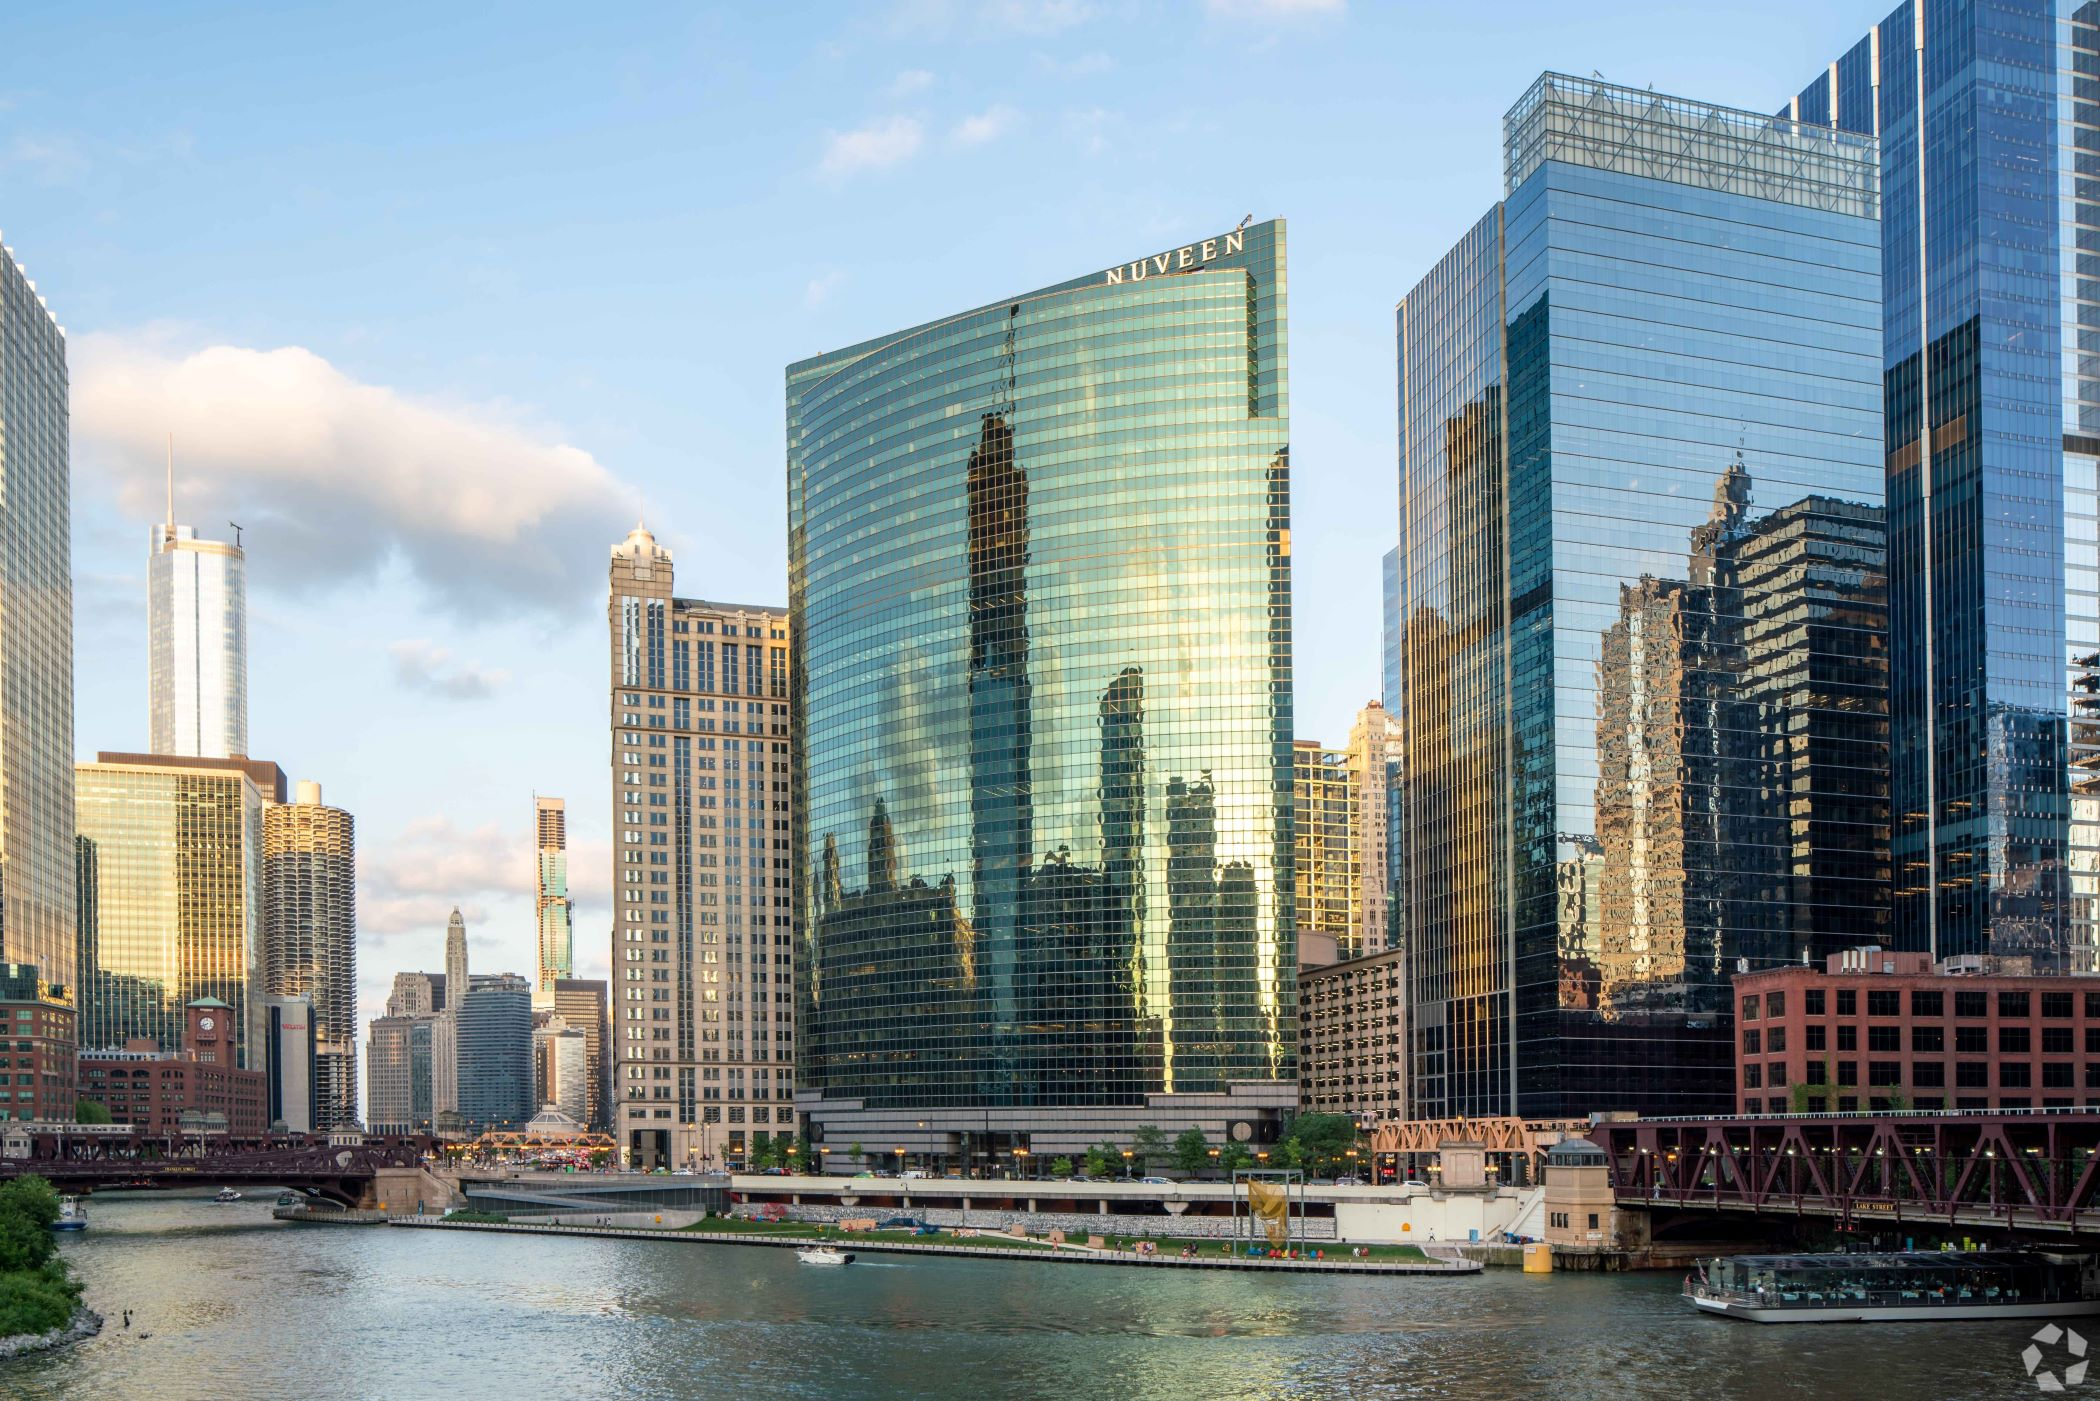 ?Vacancy rates will go up more over the next 12 months,? Savills? John Goodman said of the downtown Chicago office market. (CoStar)